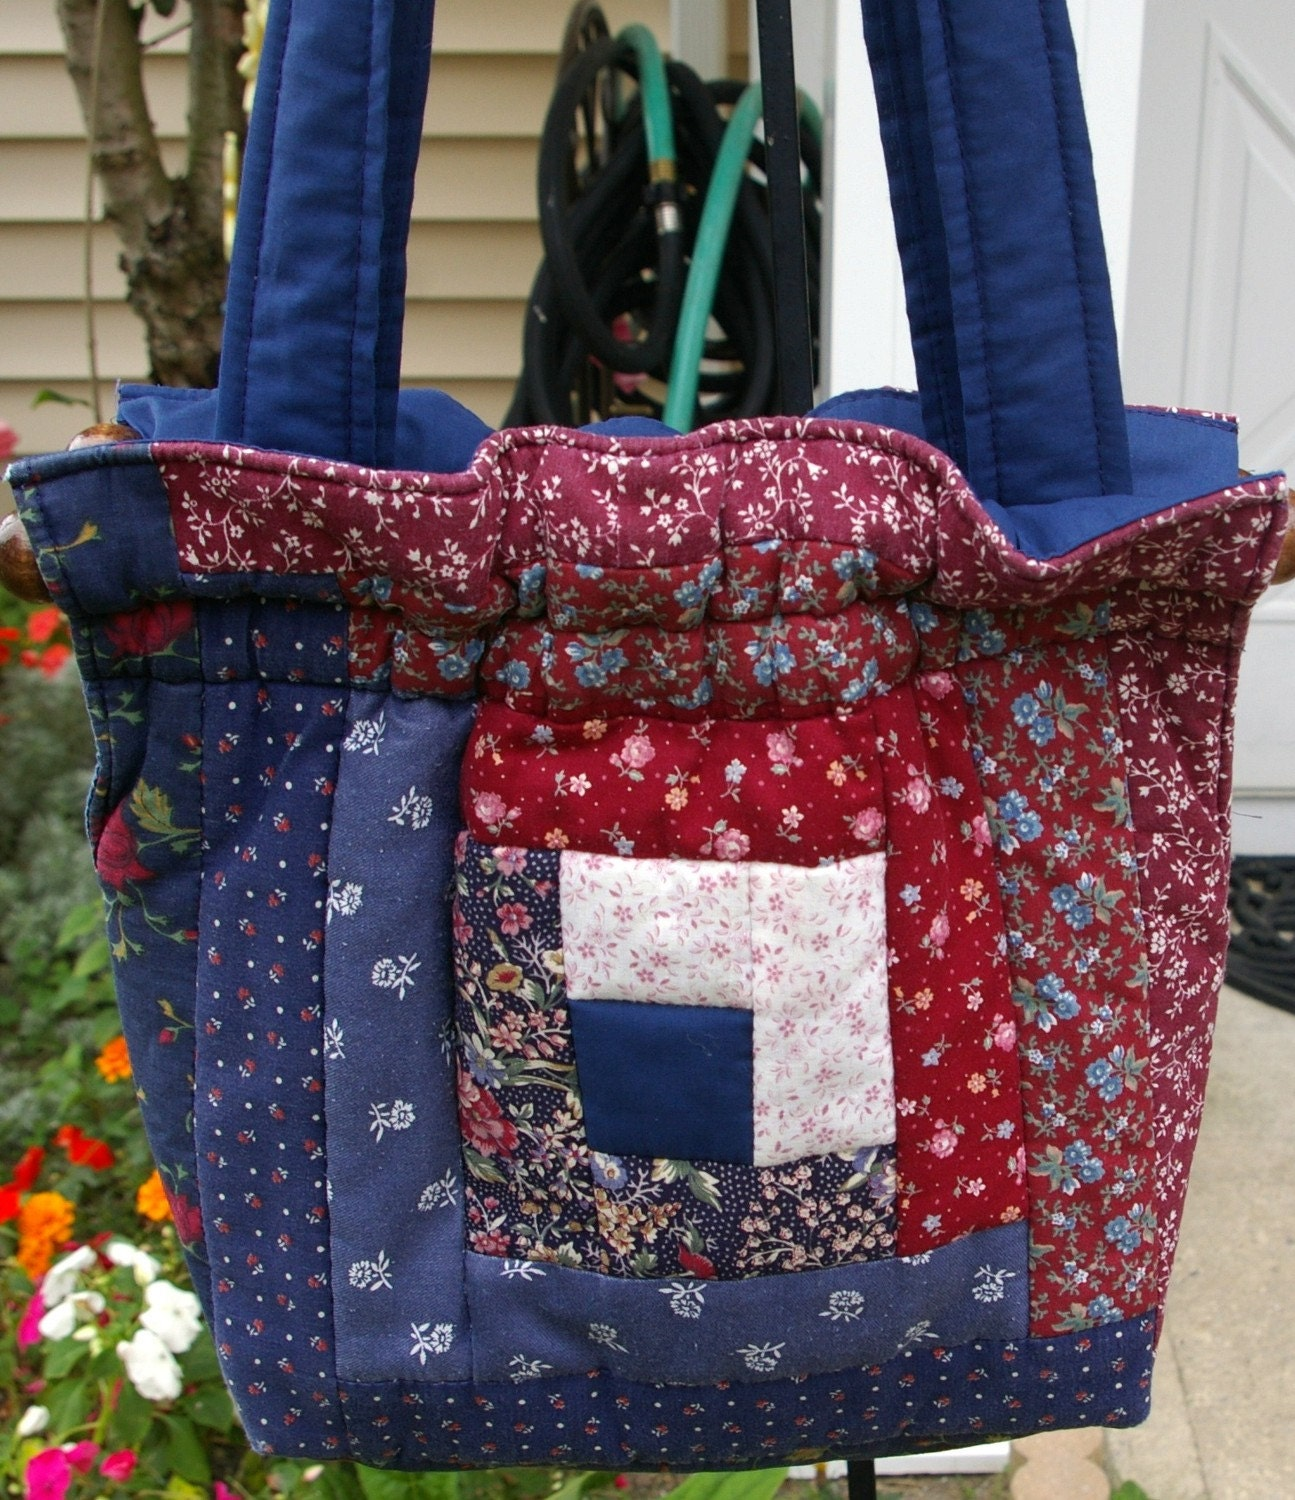 handmade quilted handbags - photo #11